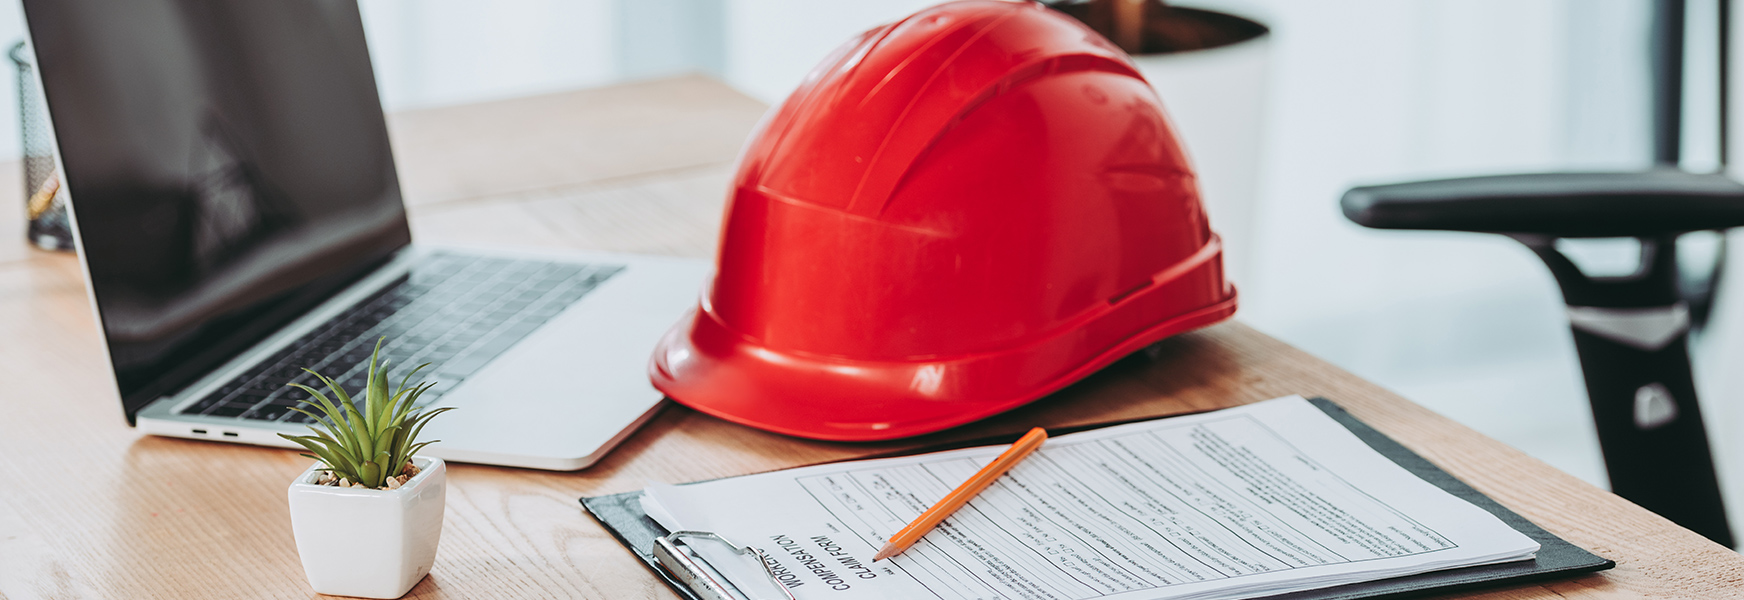 Hardhat and office supplies laying on office desk